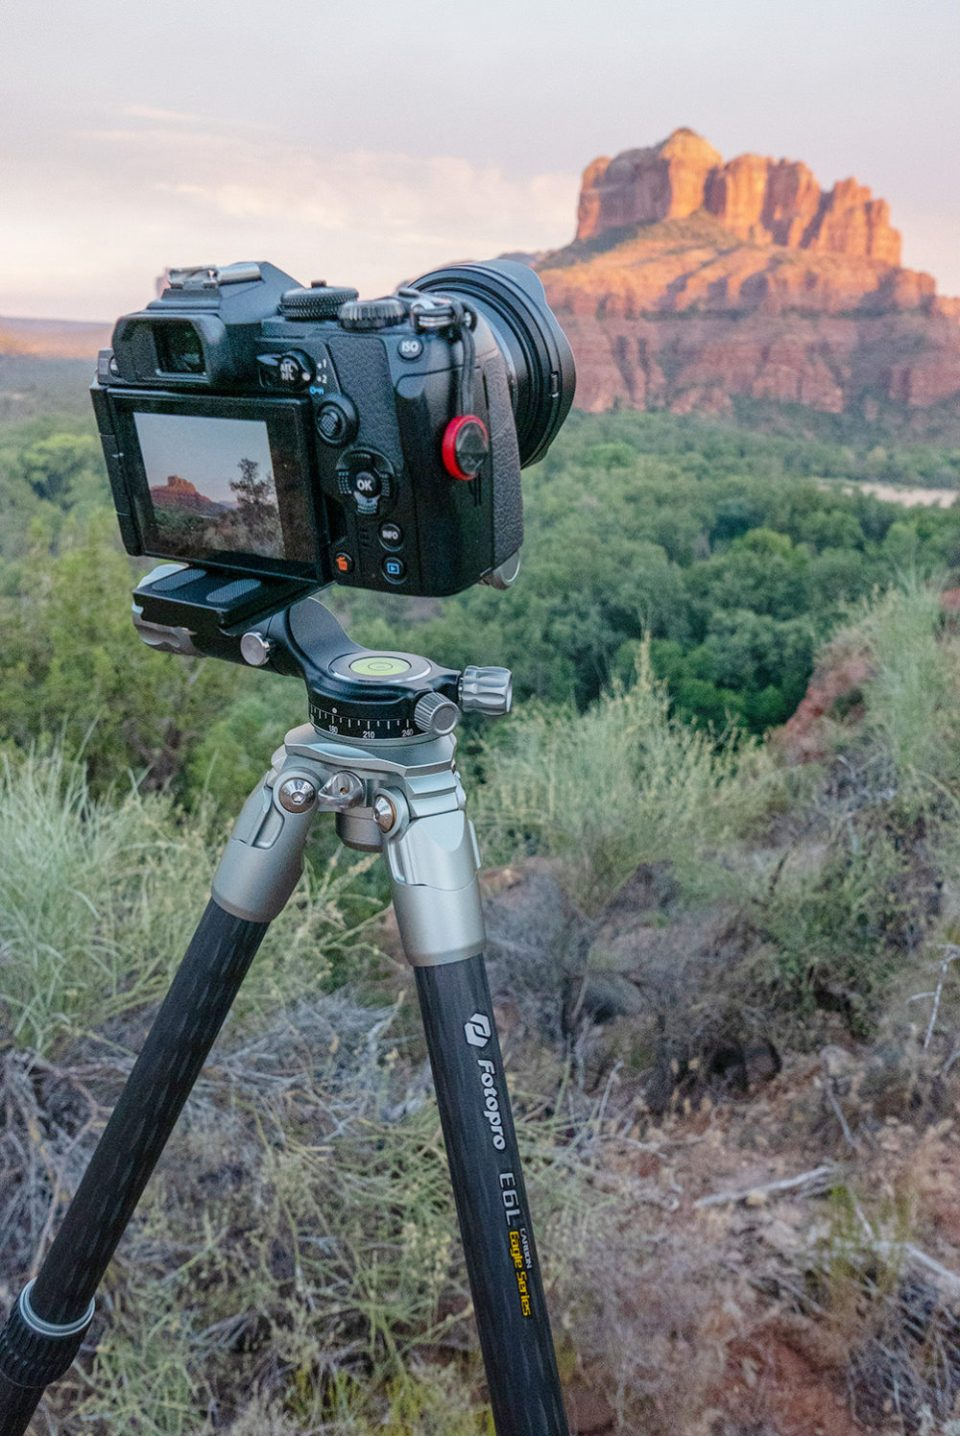 FotoPro tripod shown on location in the red rocks. The quick-level ball head makes getting the horizon straight a snap on un-level ground. © Bob Coates